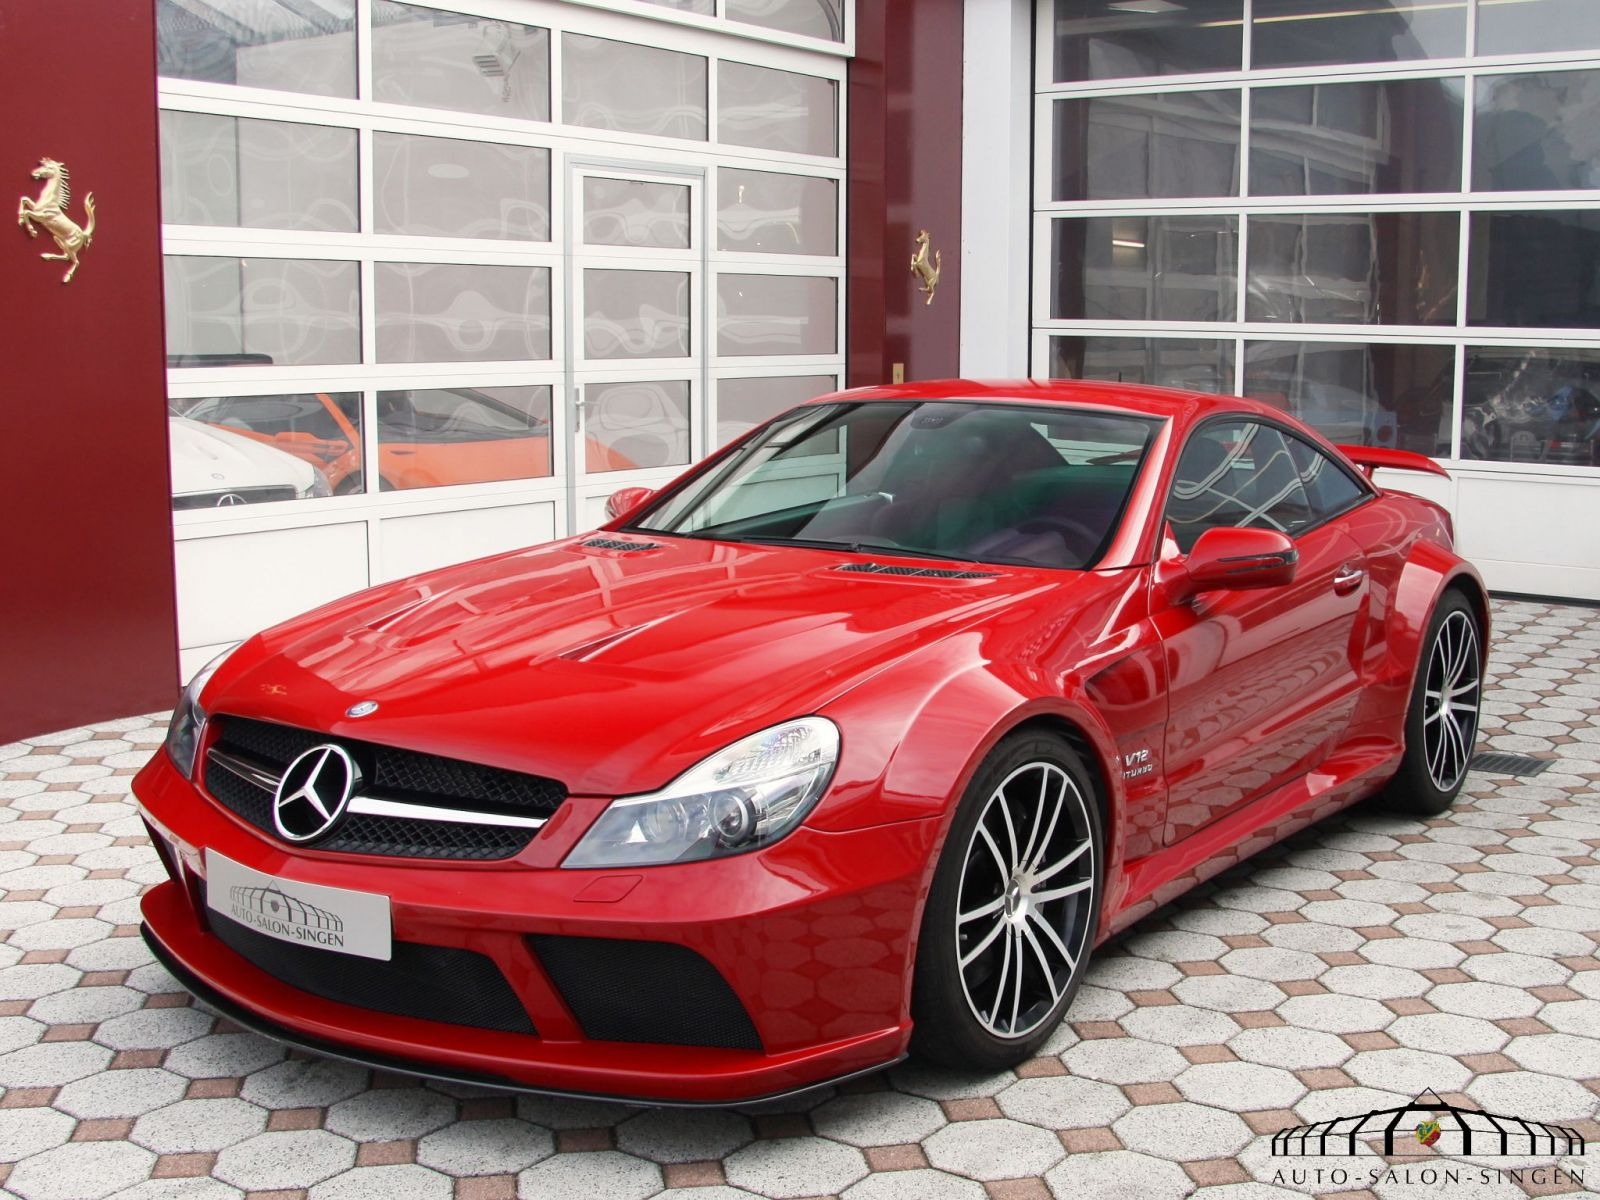 Mercedes benz sl 65 amg black series coup auto salon singen for Mercedes benz sl500 amg